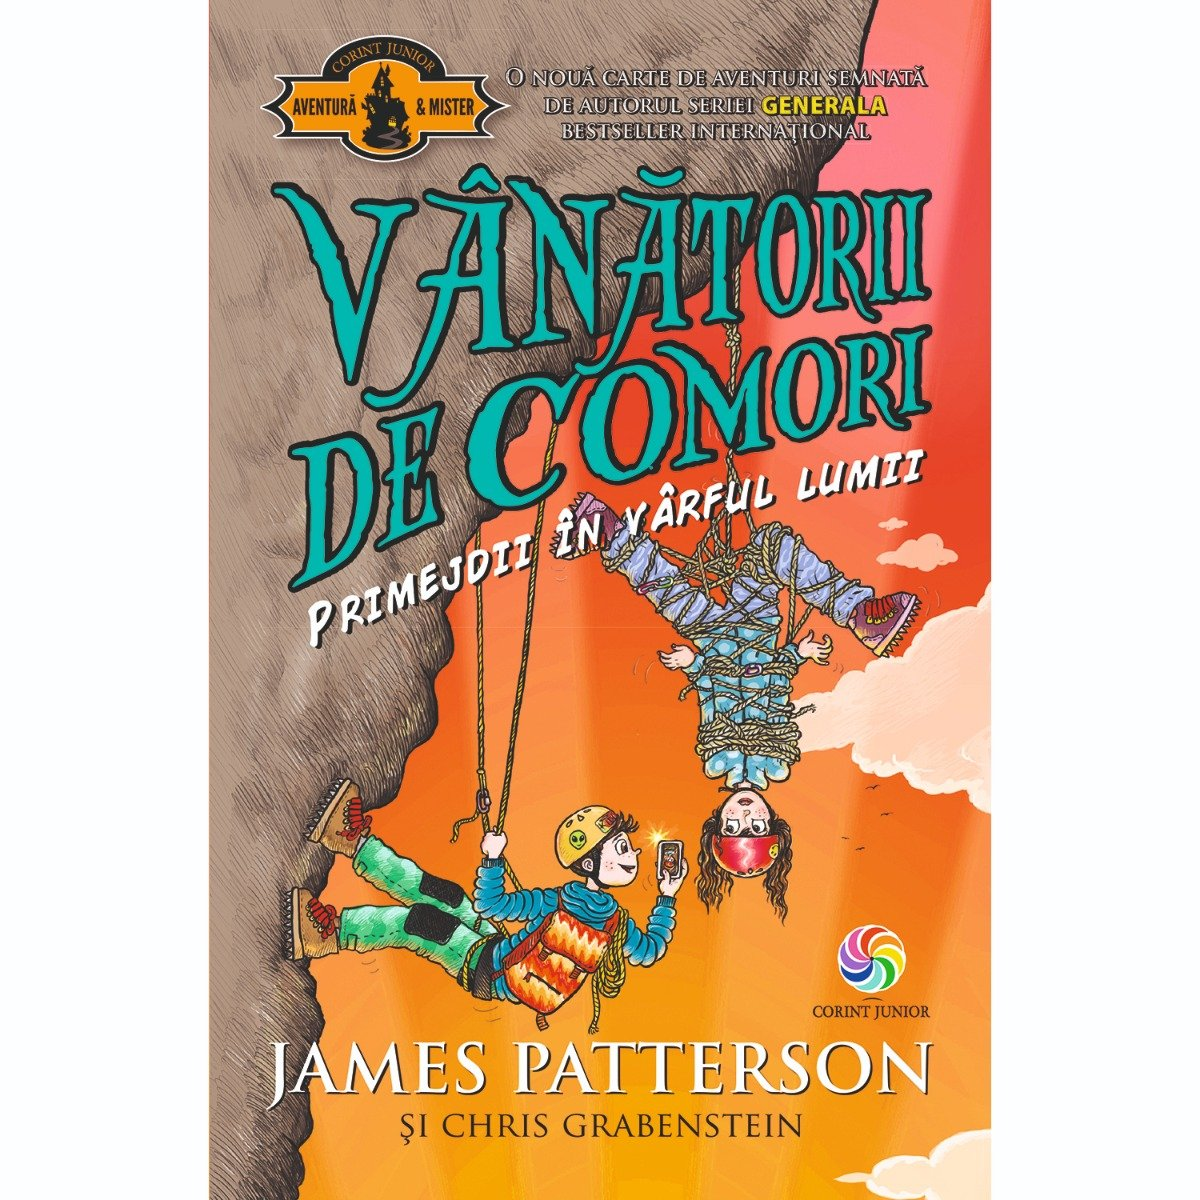 Carte Editura Corint, Vanatorii de comori vol. 4 Primejdii in varful lumii, James Patterson, Chris Grabenstein